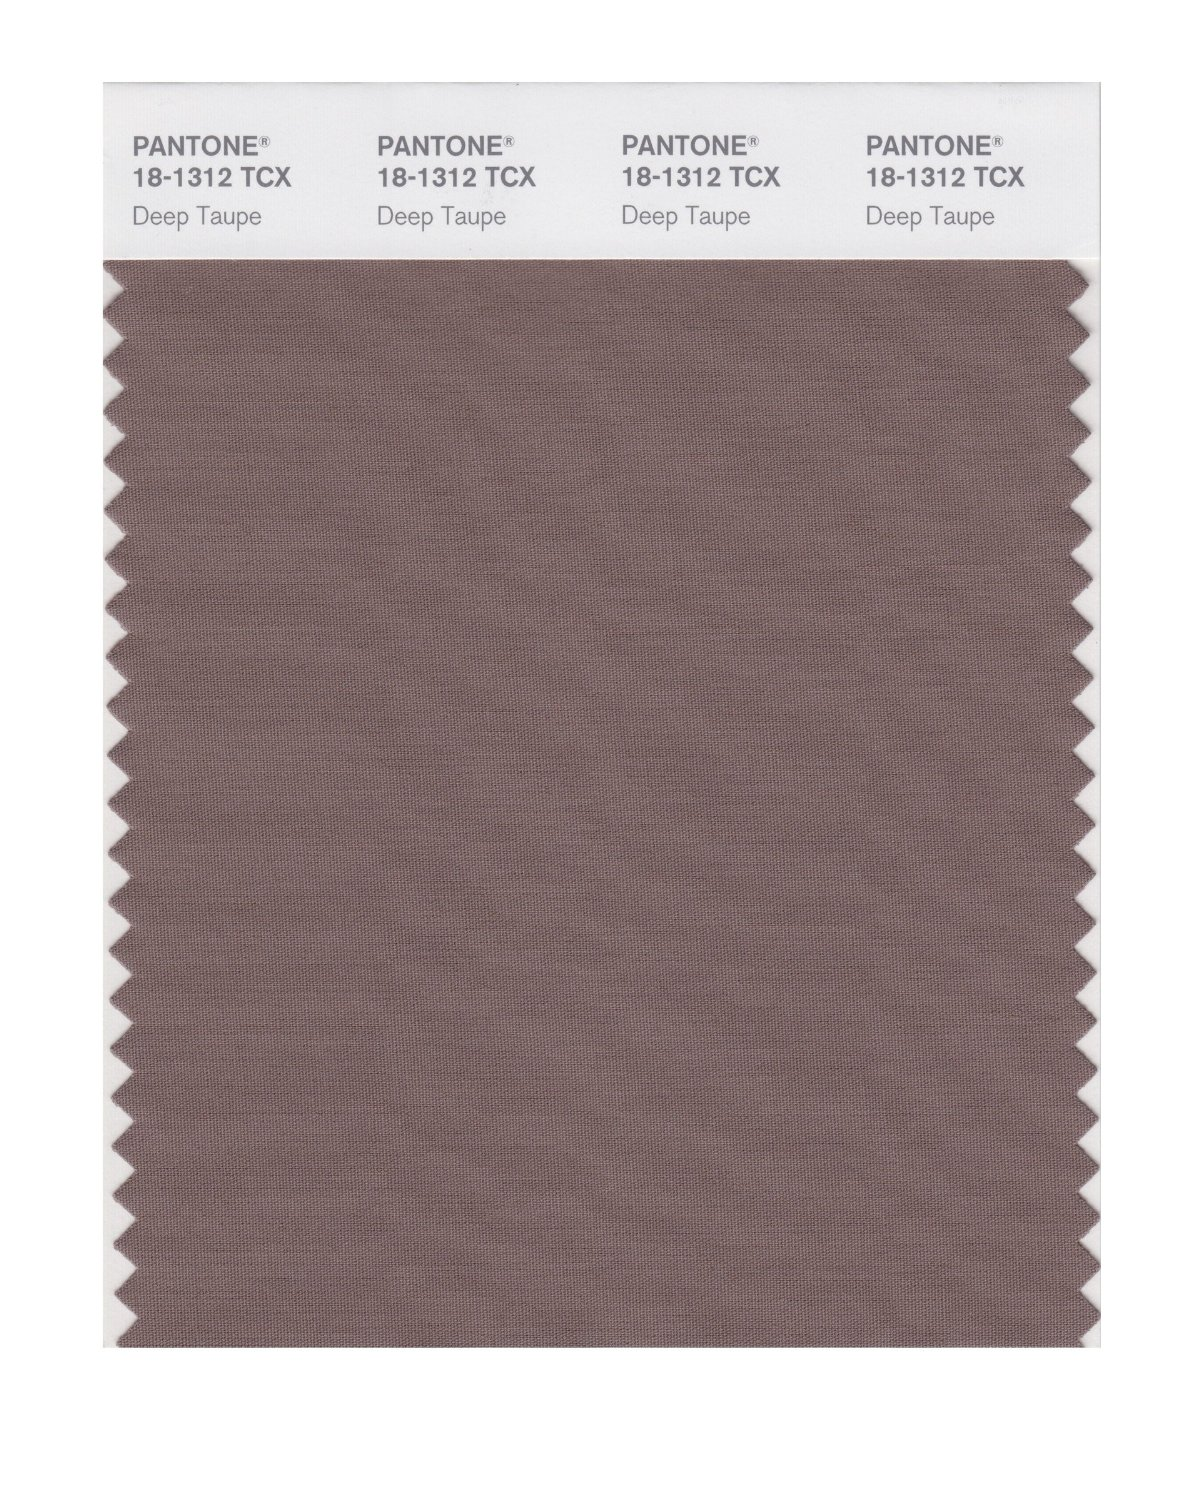 Pantone Smart Swatch 18-1312 Deep Taupe